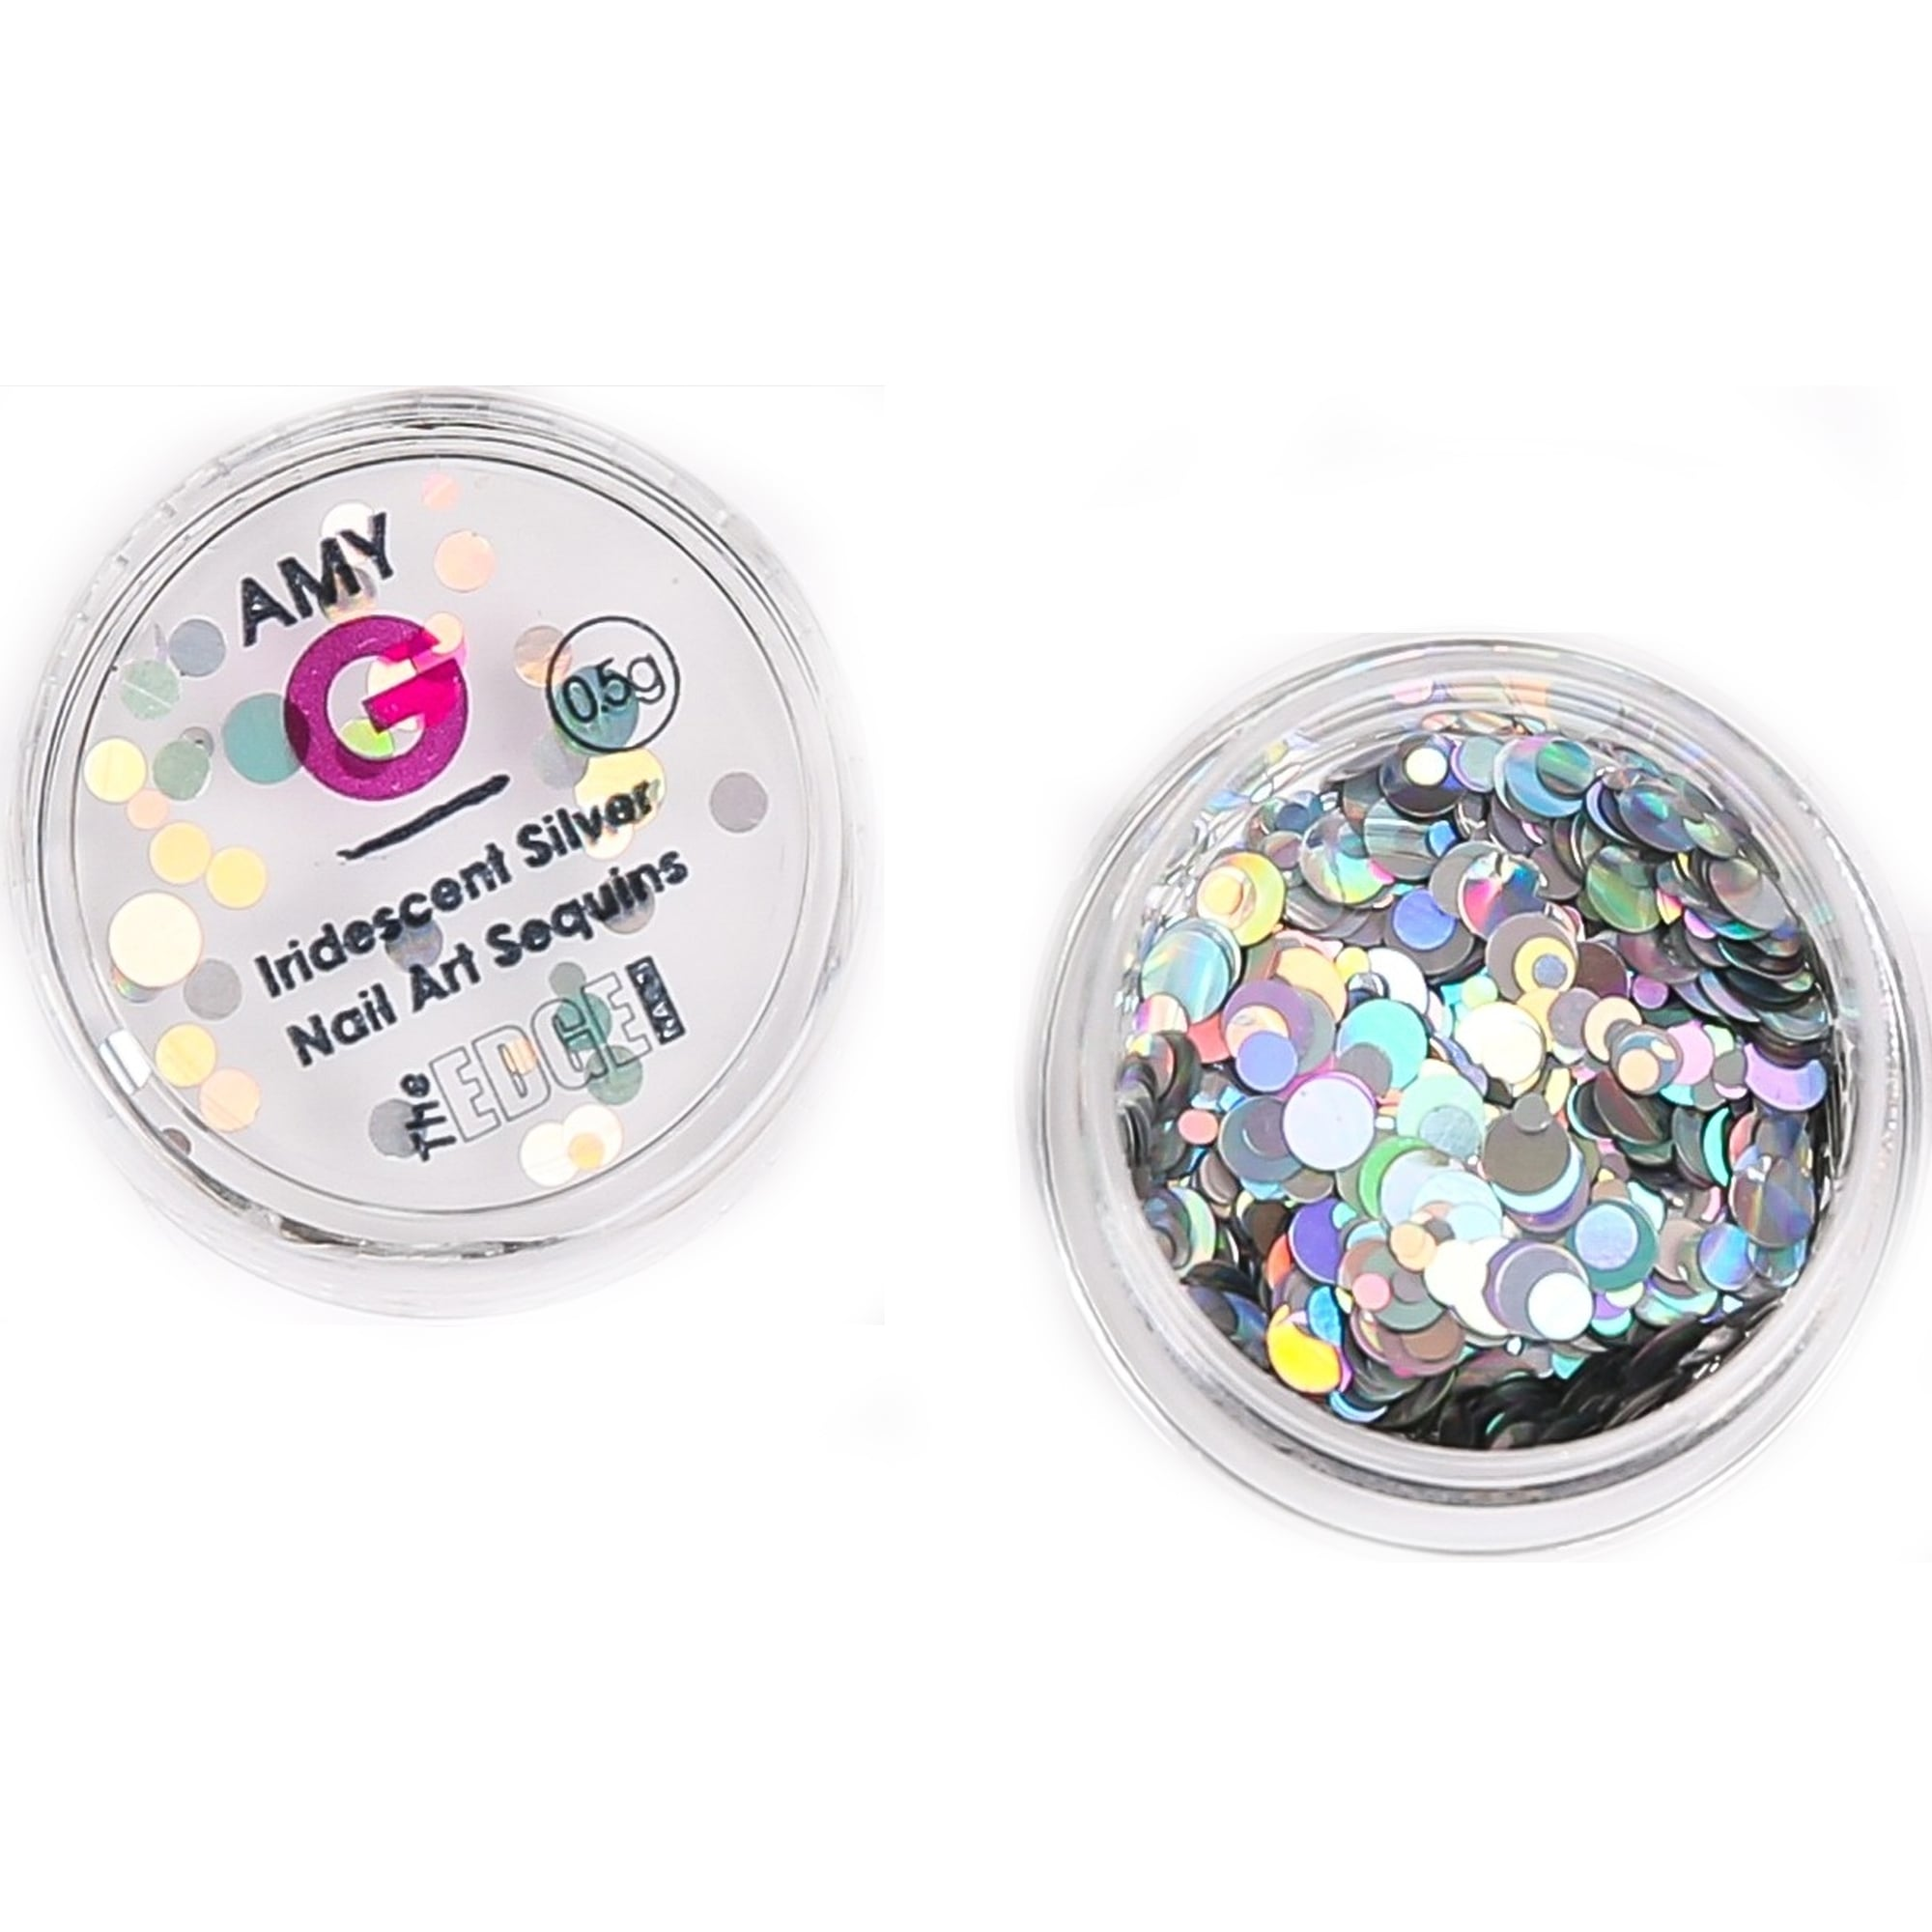 Amy G - Iridescent Nail Art Sequins - Silver 0.5g (3003075)